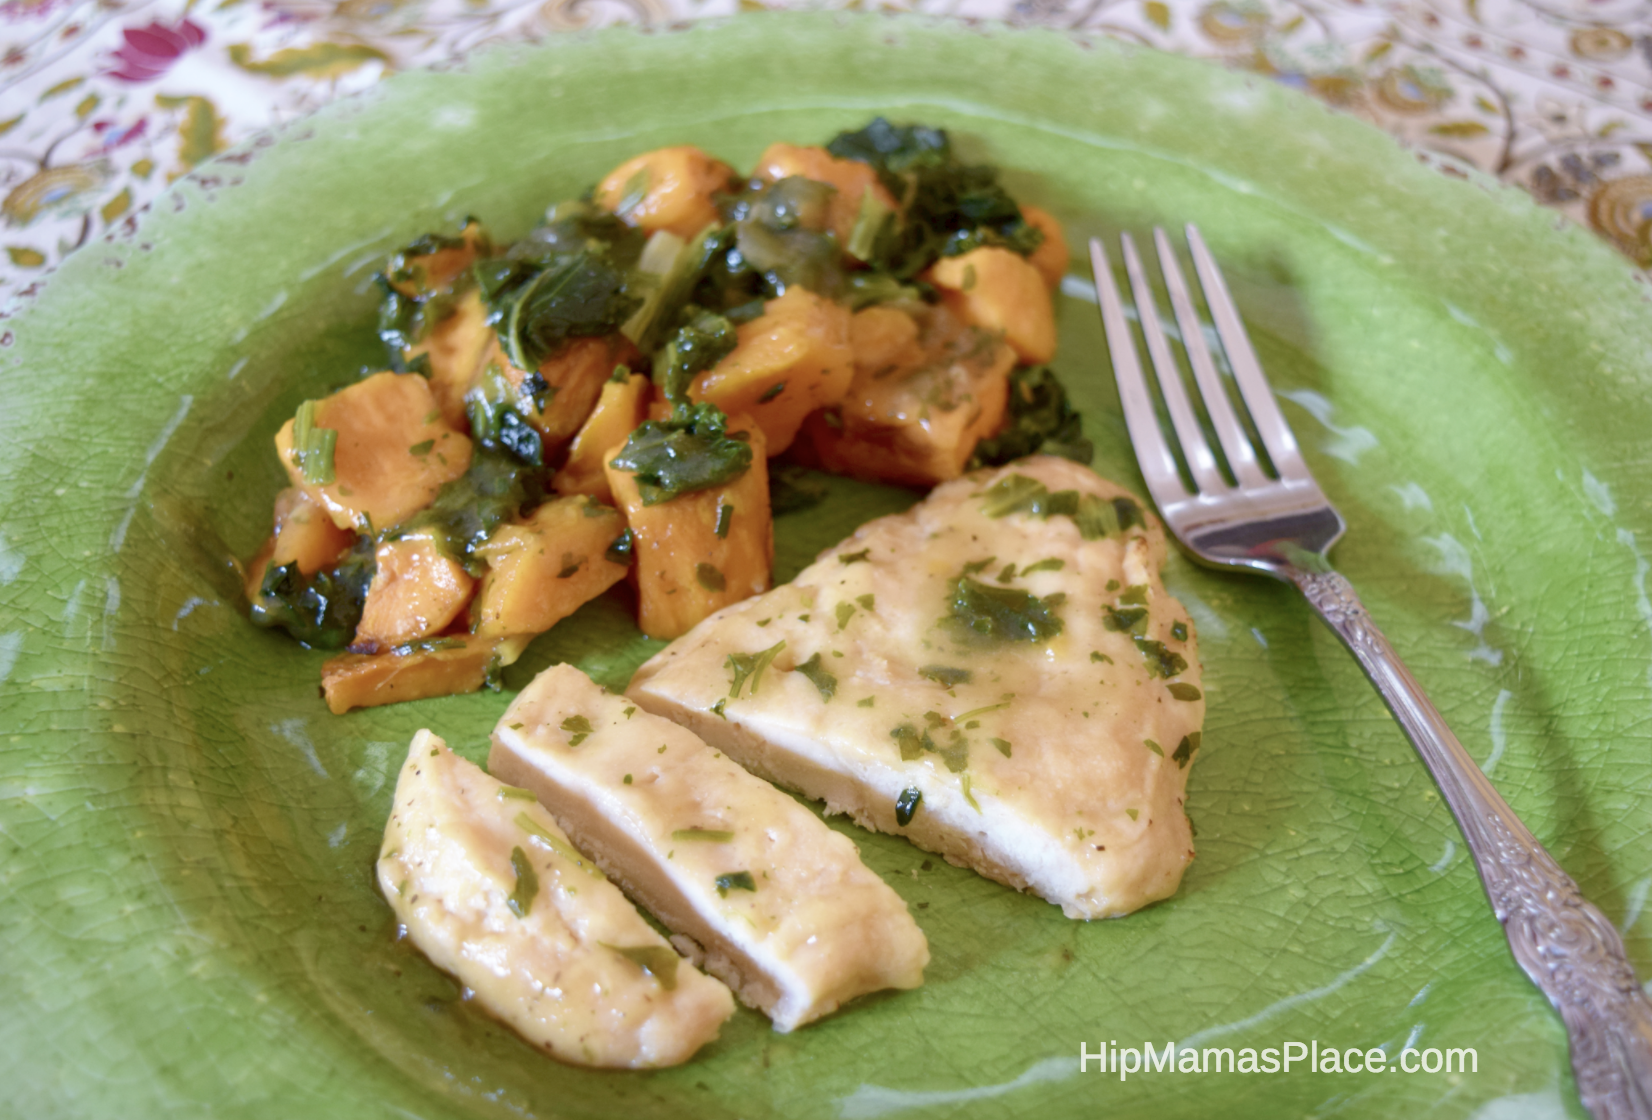 Our latest try from the Marie Callender's Delights variety is the Baked Country Chicken with Roasted Sweet Potatoes. It's got baked white meat chicken with savory sweet potatoes and leafy greens, then topped with white wine caramelized onion sauce